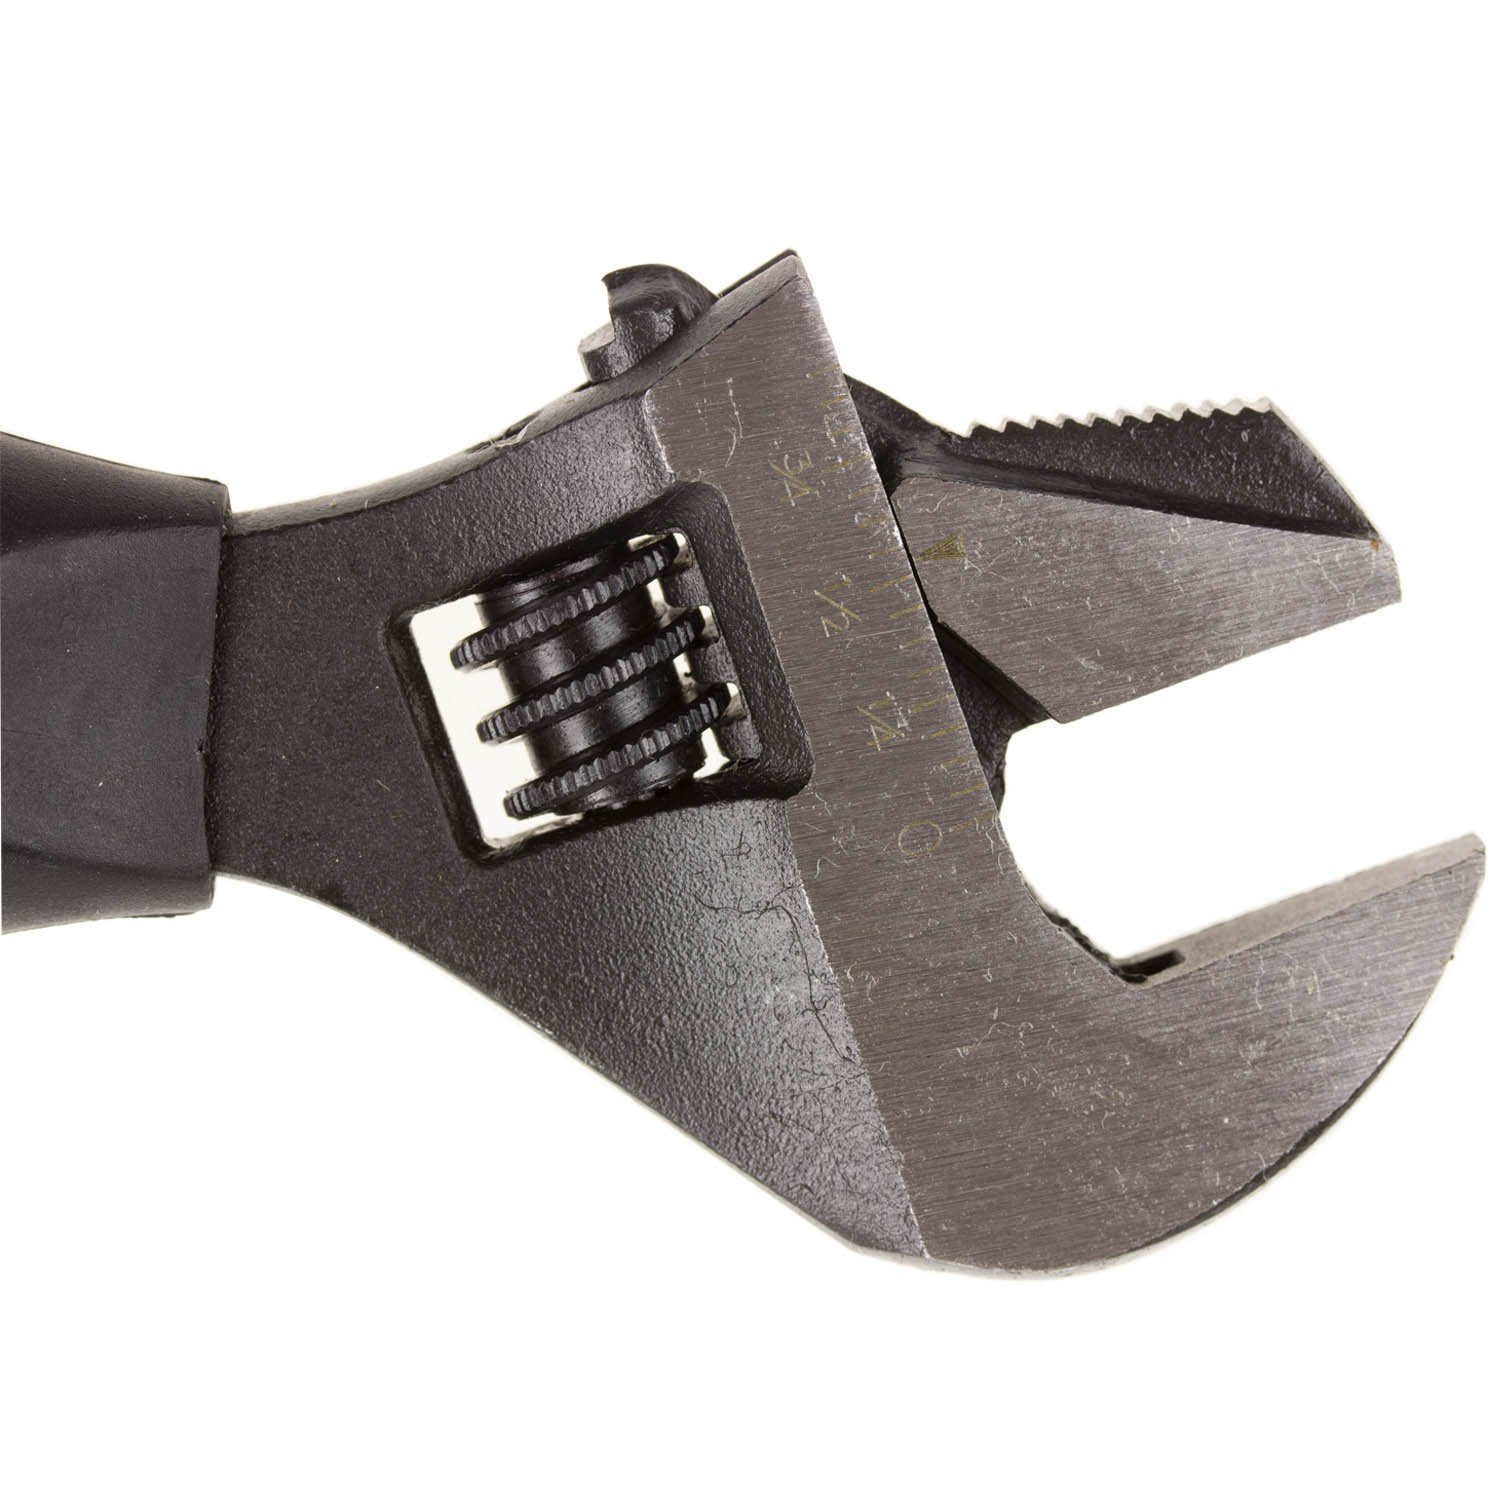 DEKTON DT20310 2-in-1 Stubby Adjustable Wrench Silver